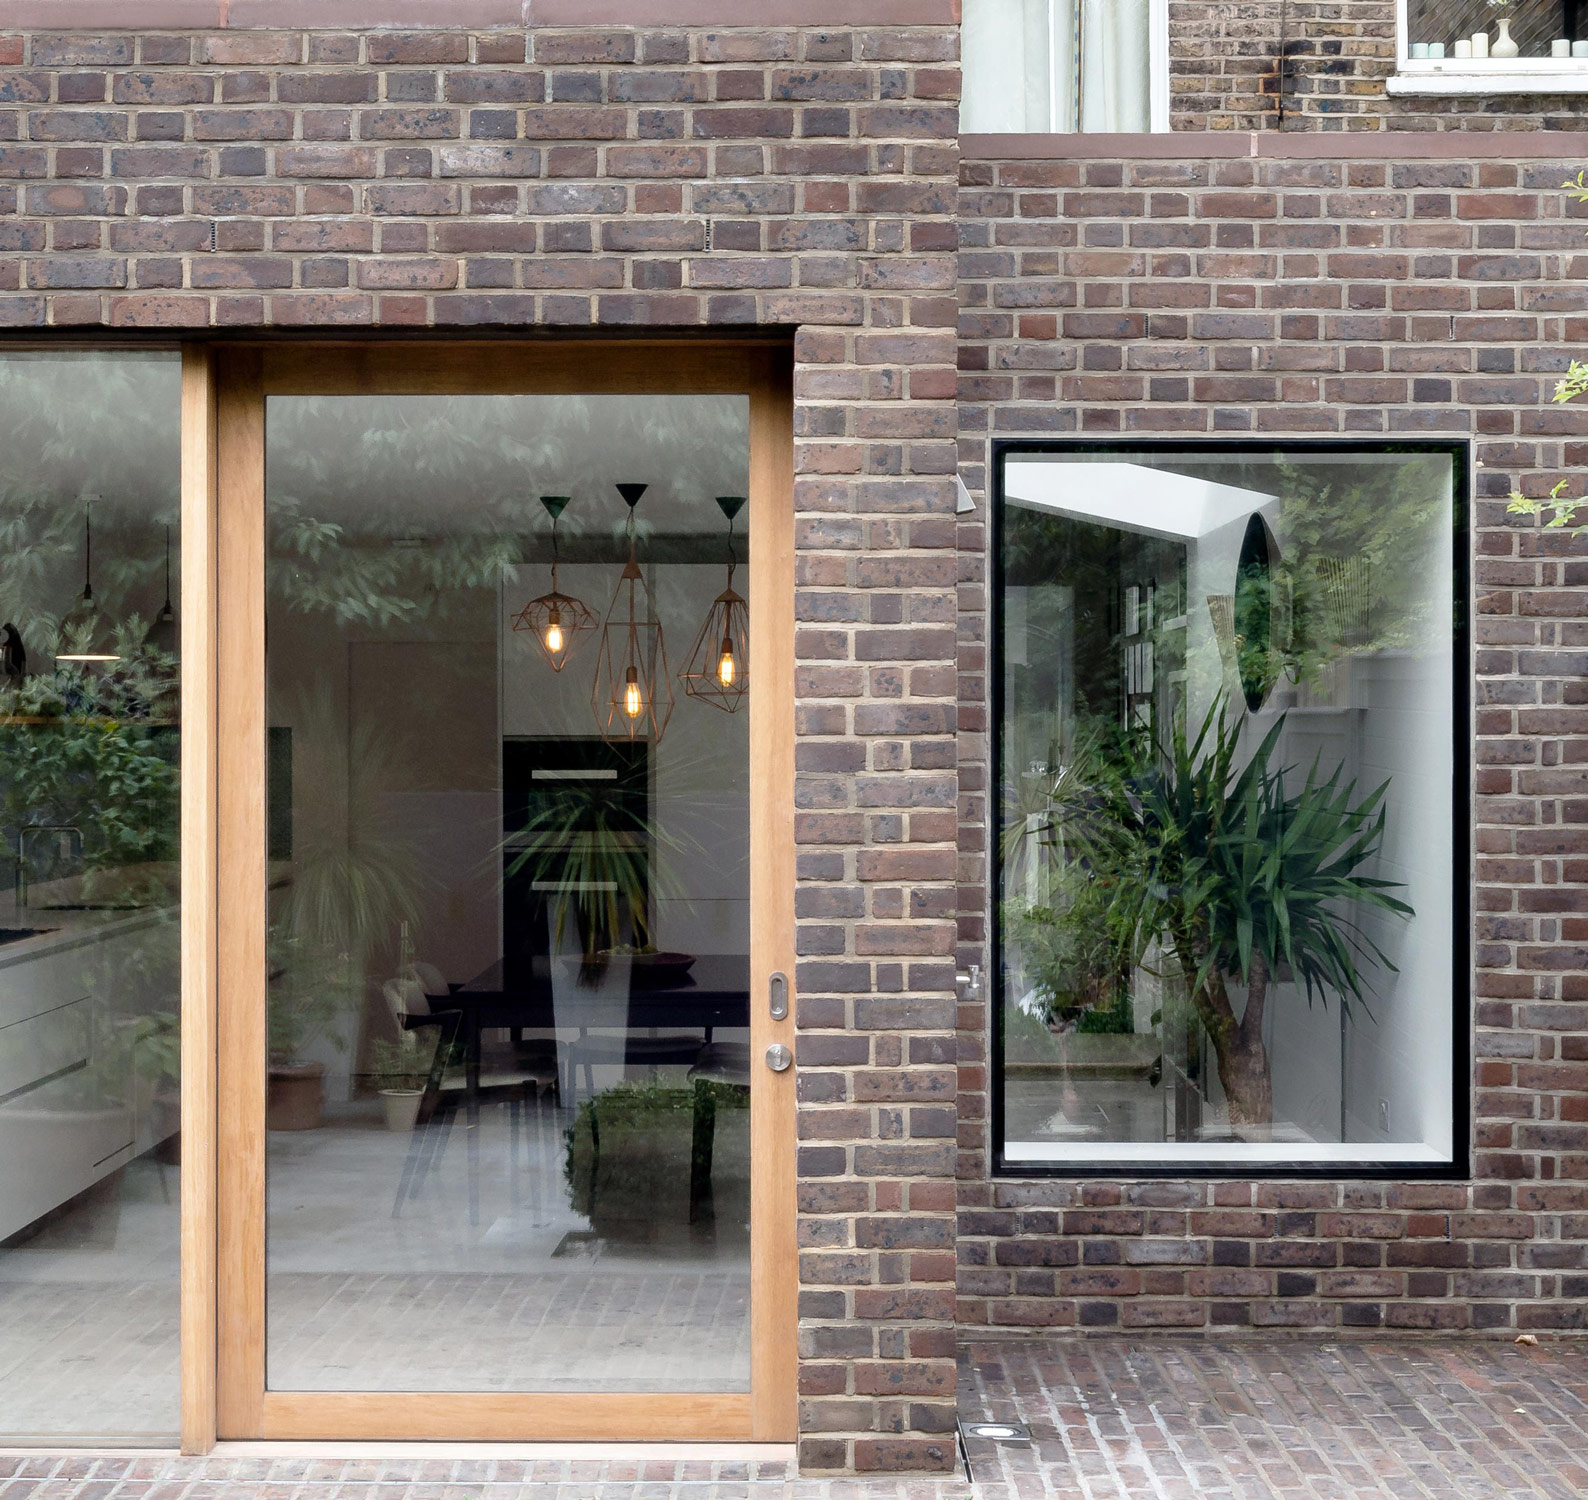 Kensington house extension in a conservation area